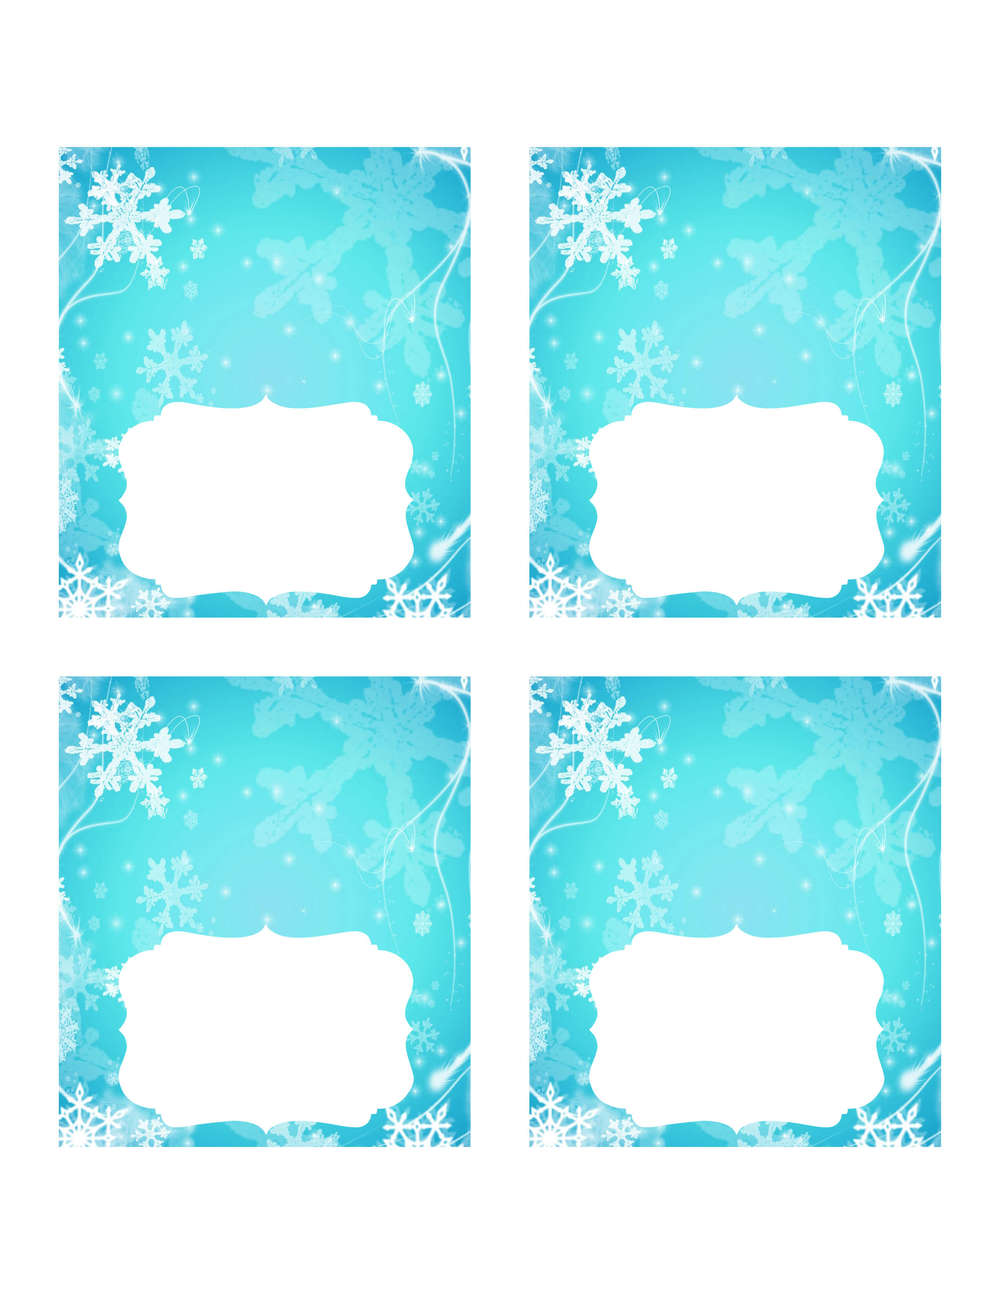 photo about Frozen Party Food Labels Free Printable referred to as Frozen get together Programs with Totally free printables